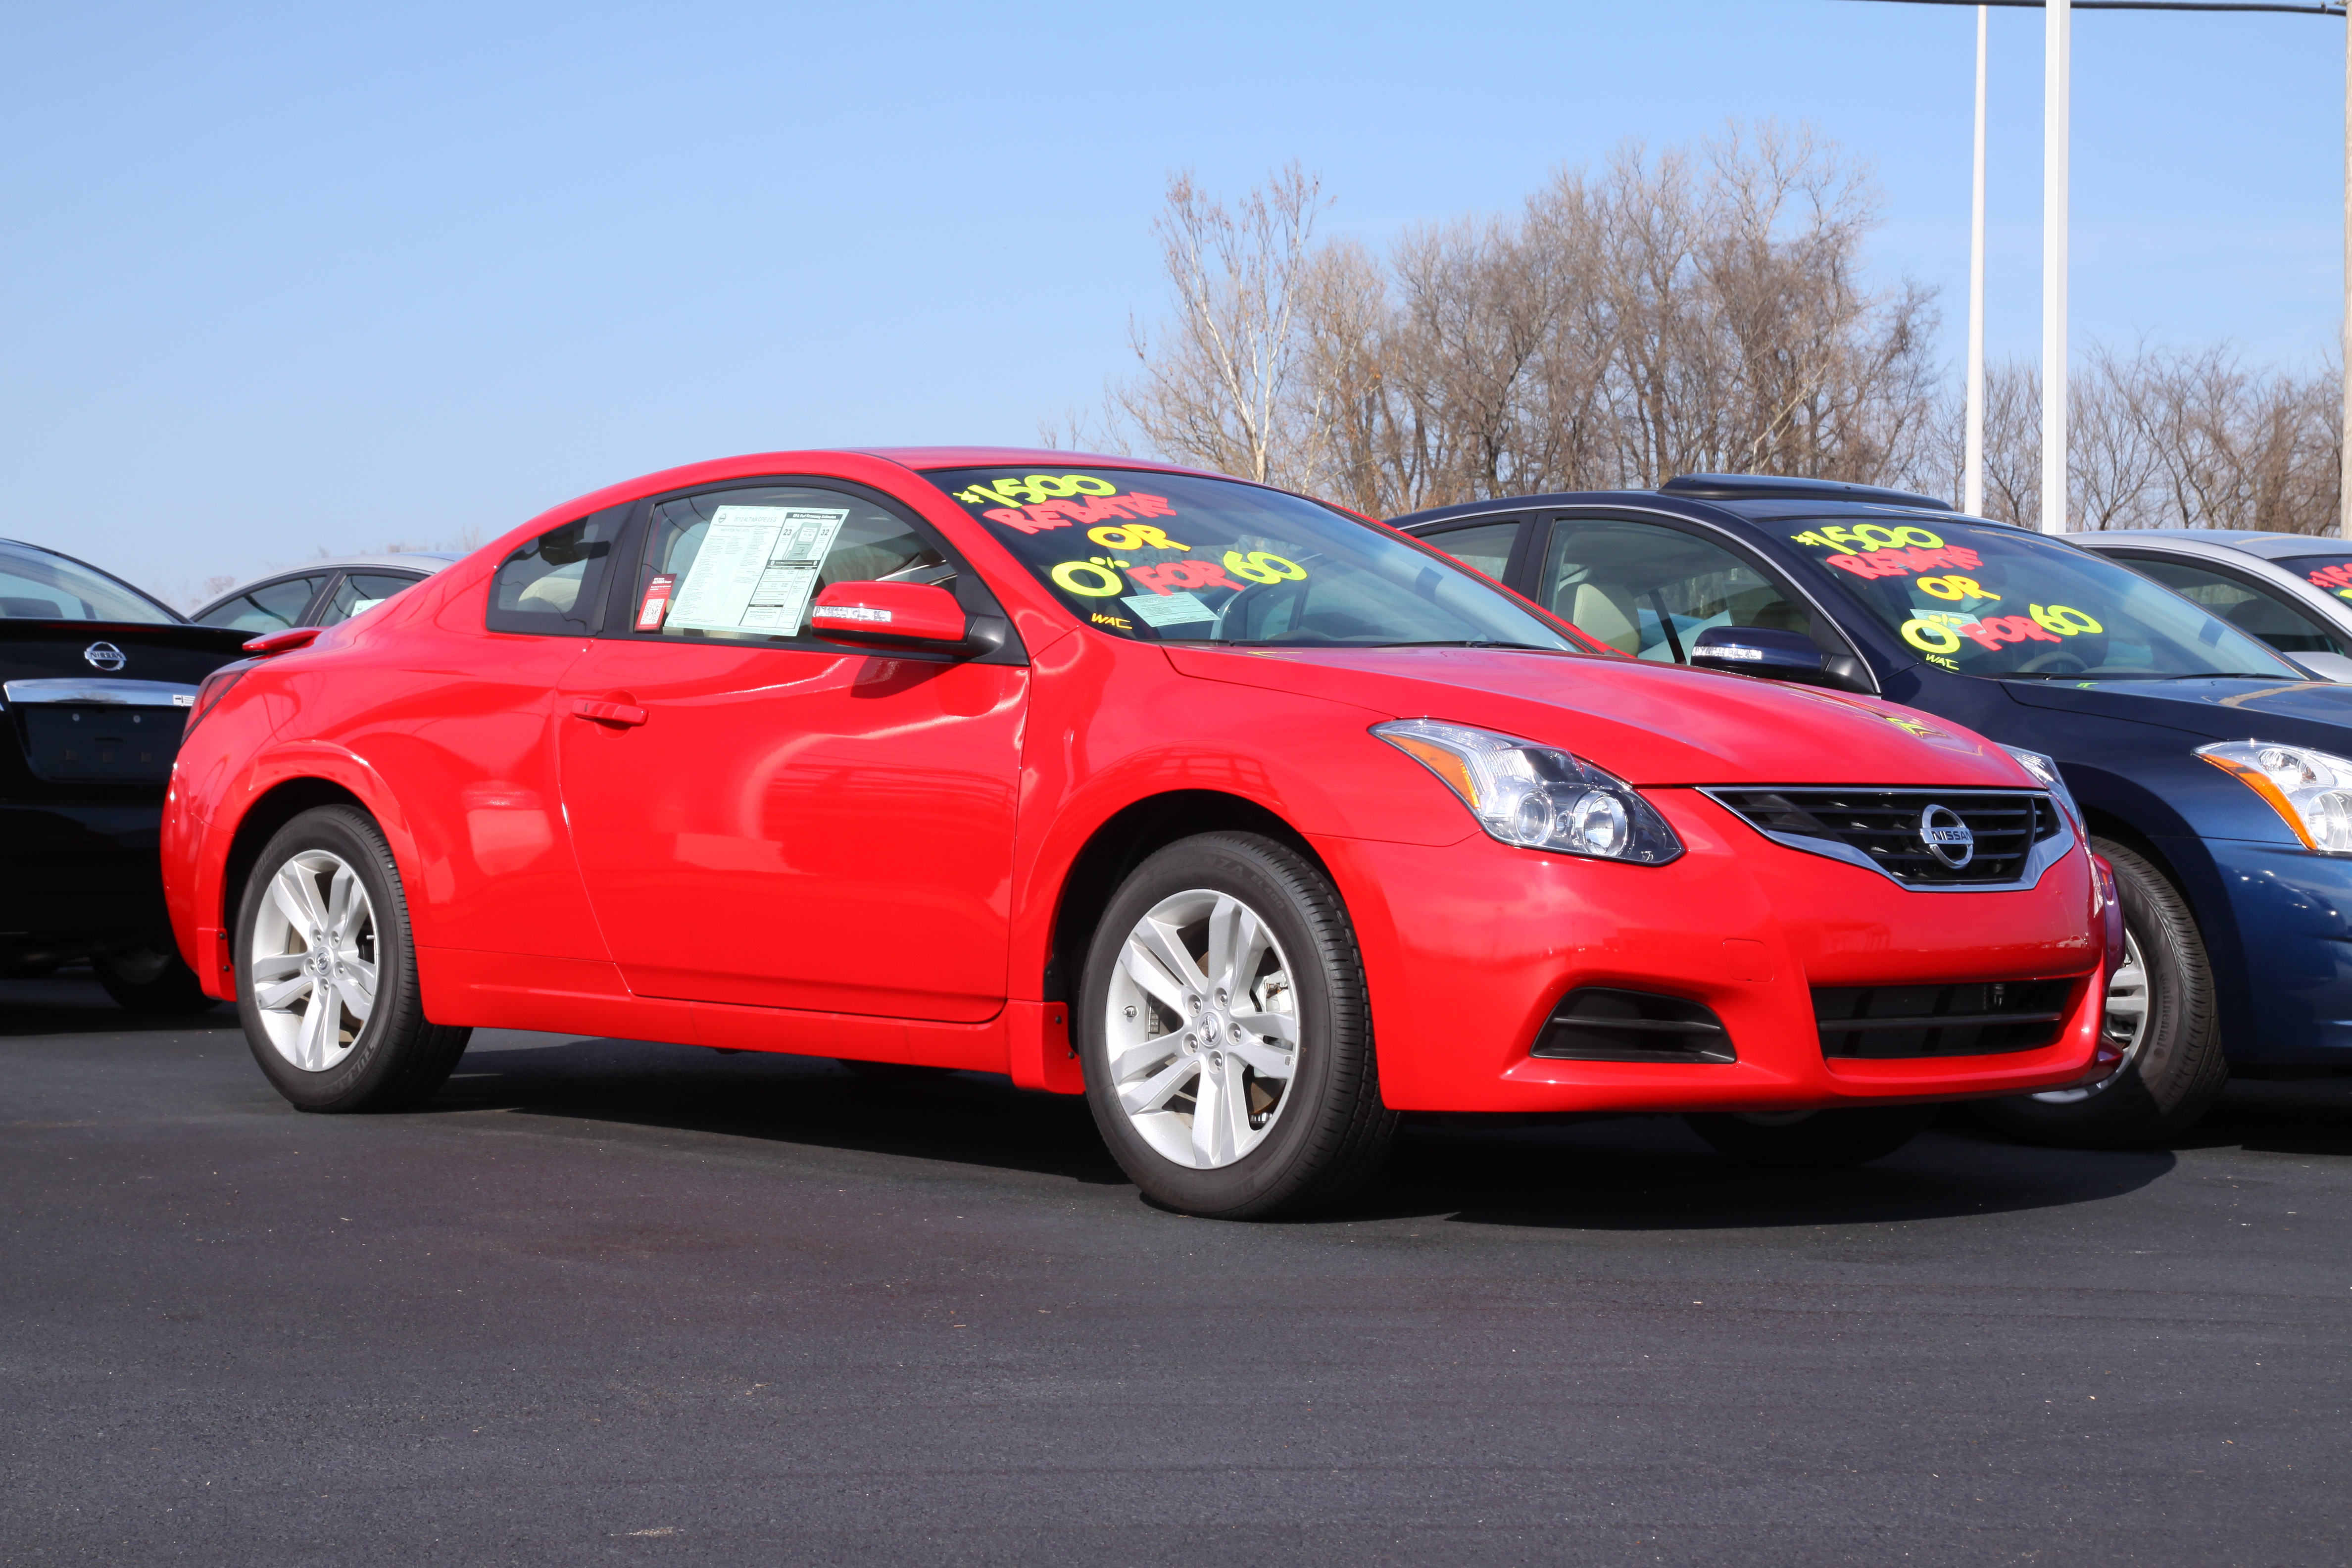 Wonderful 2012 Nissan Altima 2.5S Coupe In Red Alertu201d]. Polldaddy ...